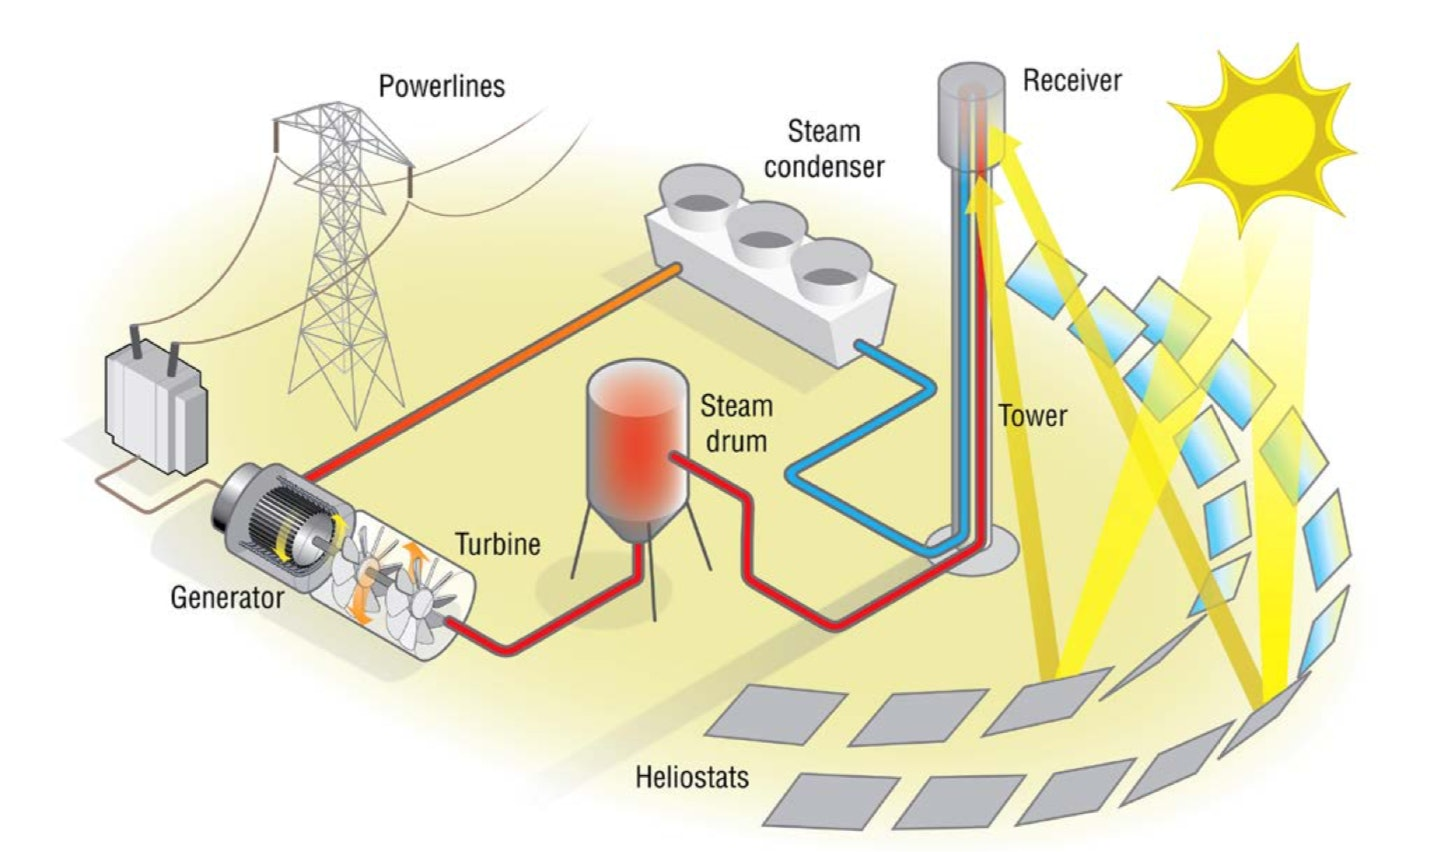 A diagram from the United States Department of Energy showing how the system works.